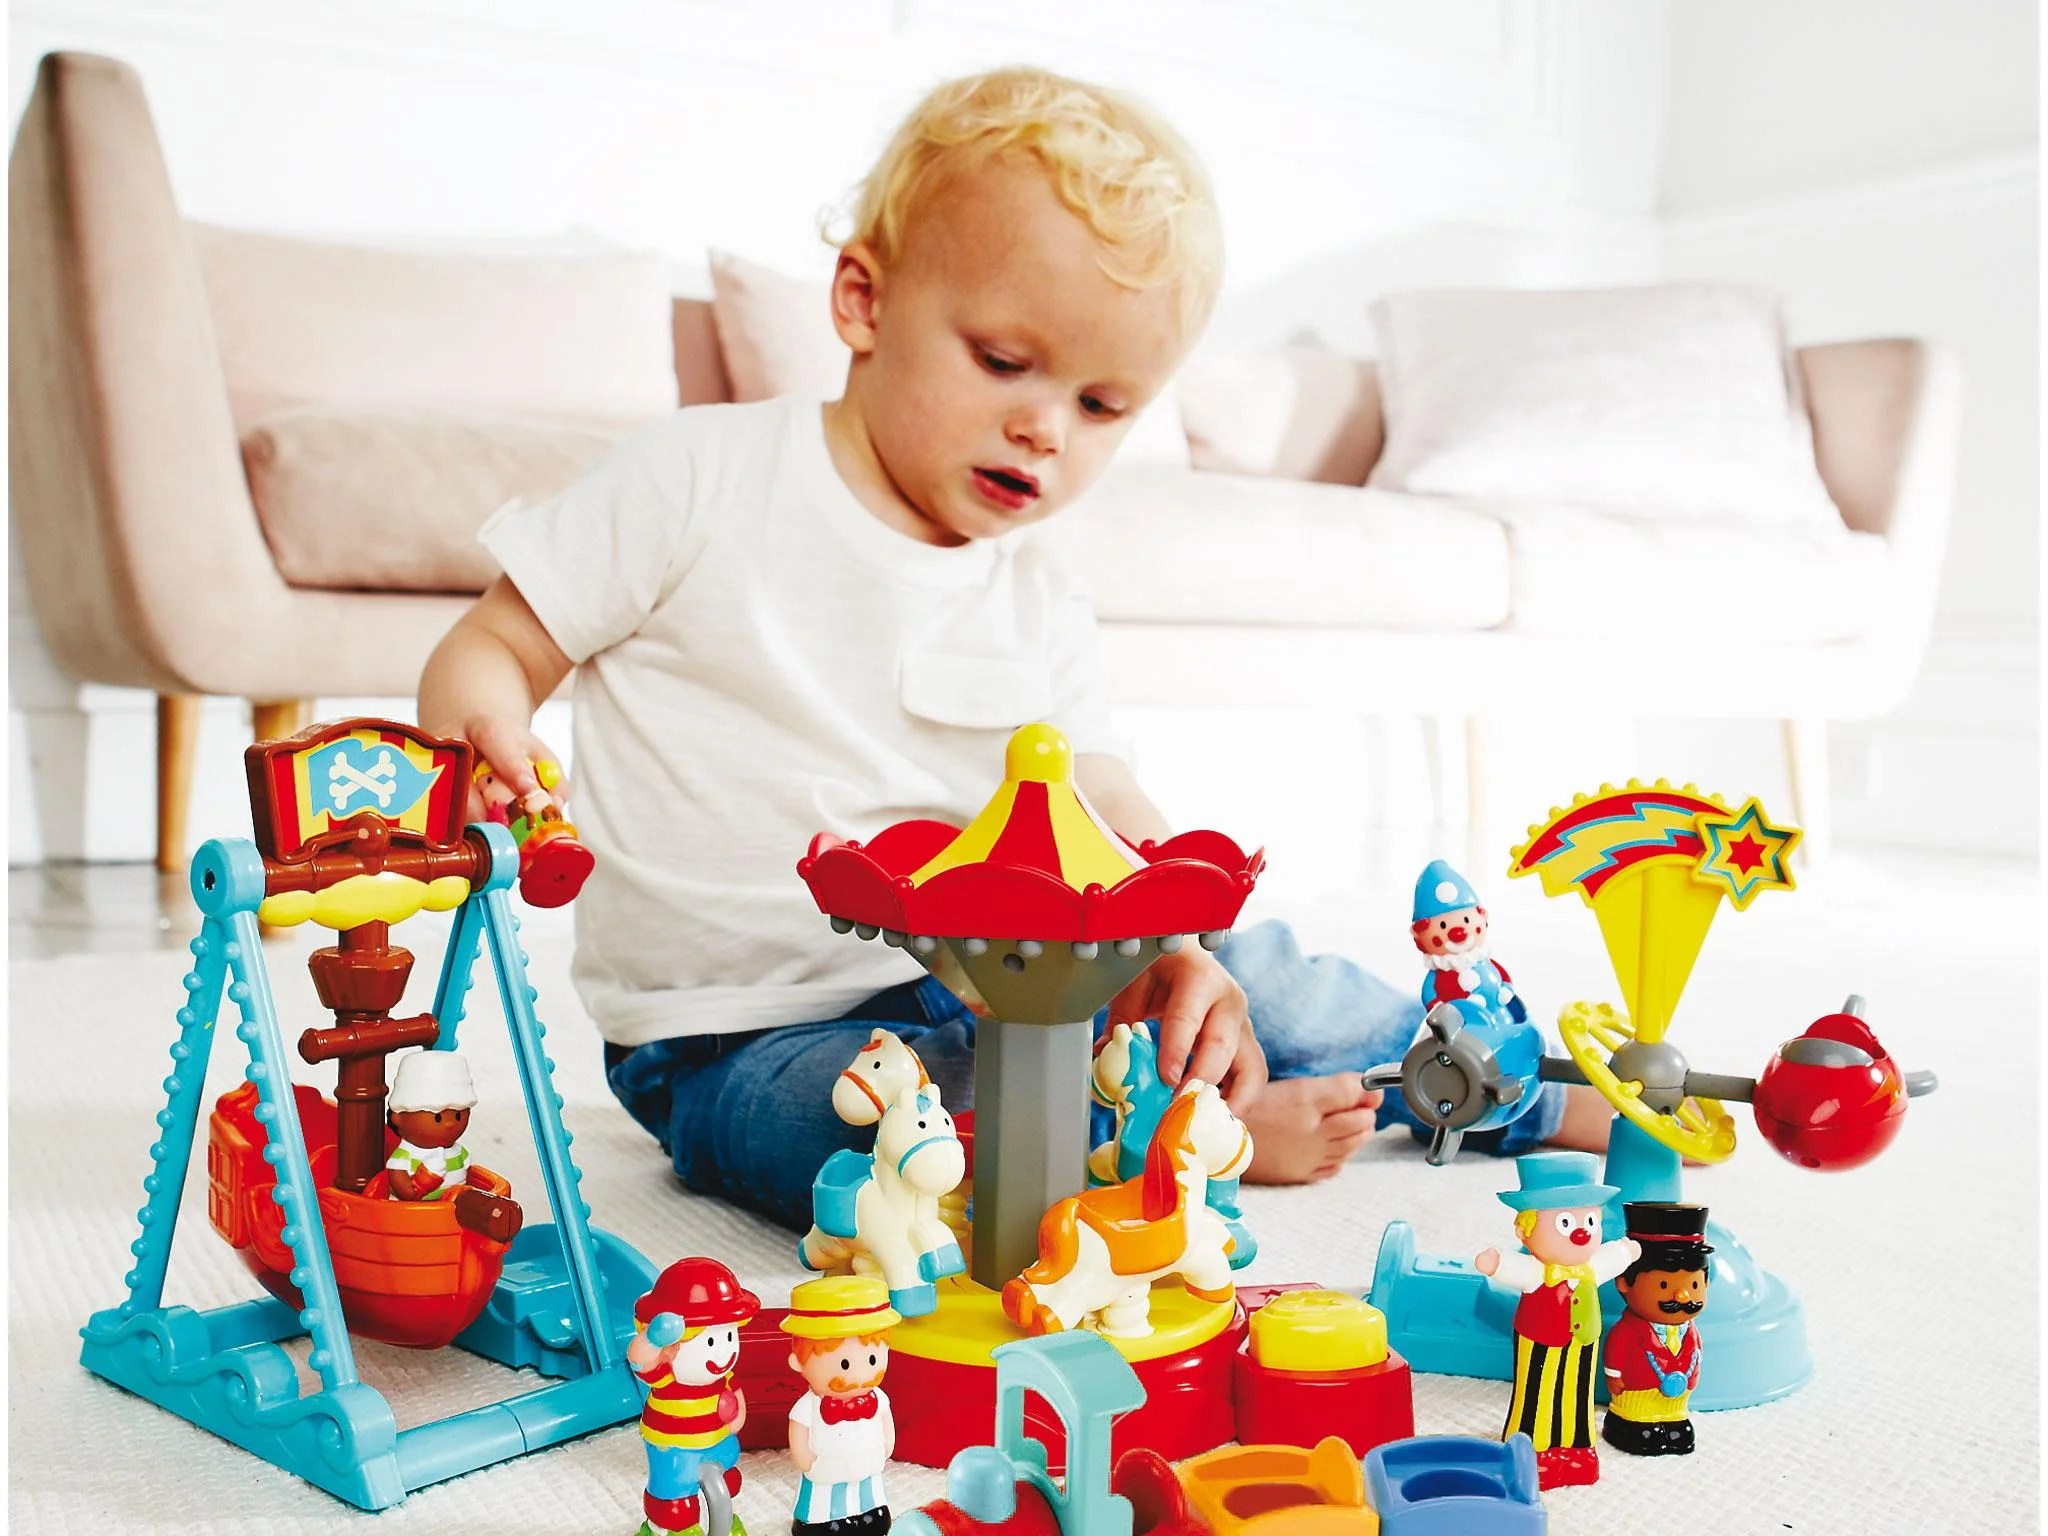 14 Best Gifts For 1-year-olds